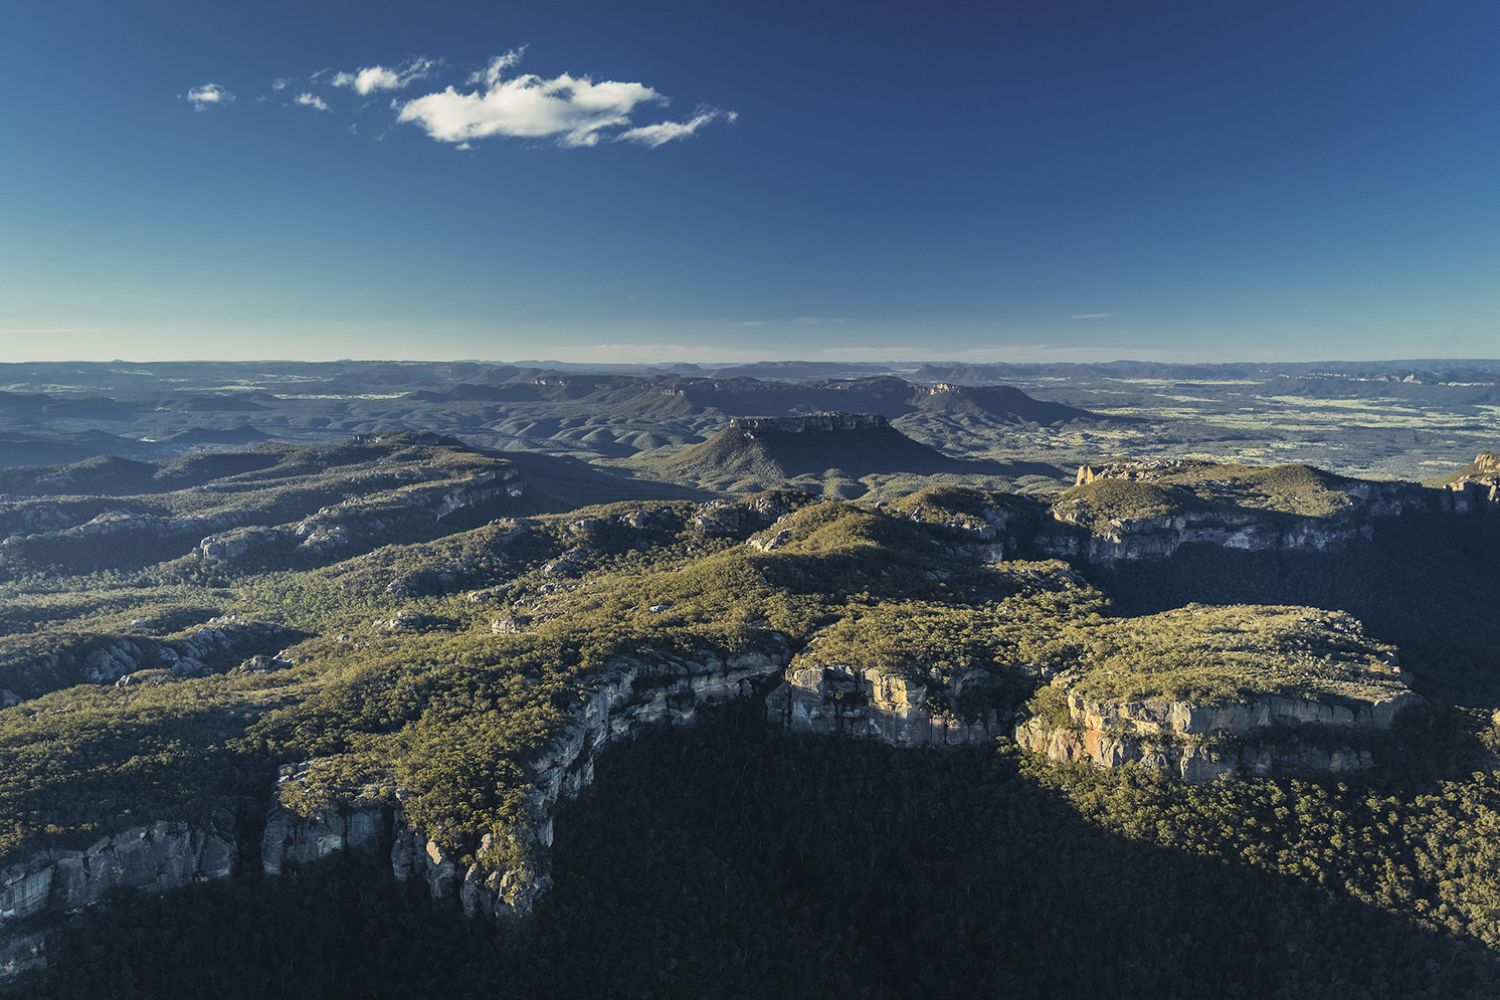 Sun rising over the World-Heritage listed Gardens of Stone National Park in Wolgan, Blue Mountains